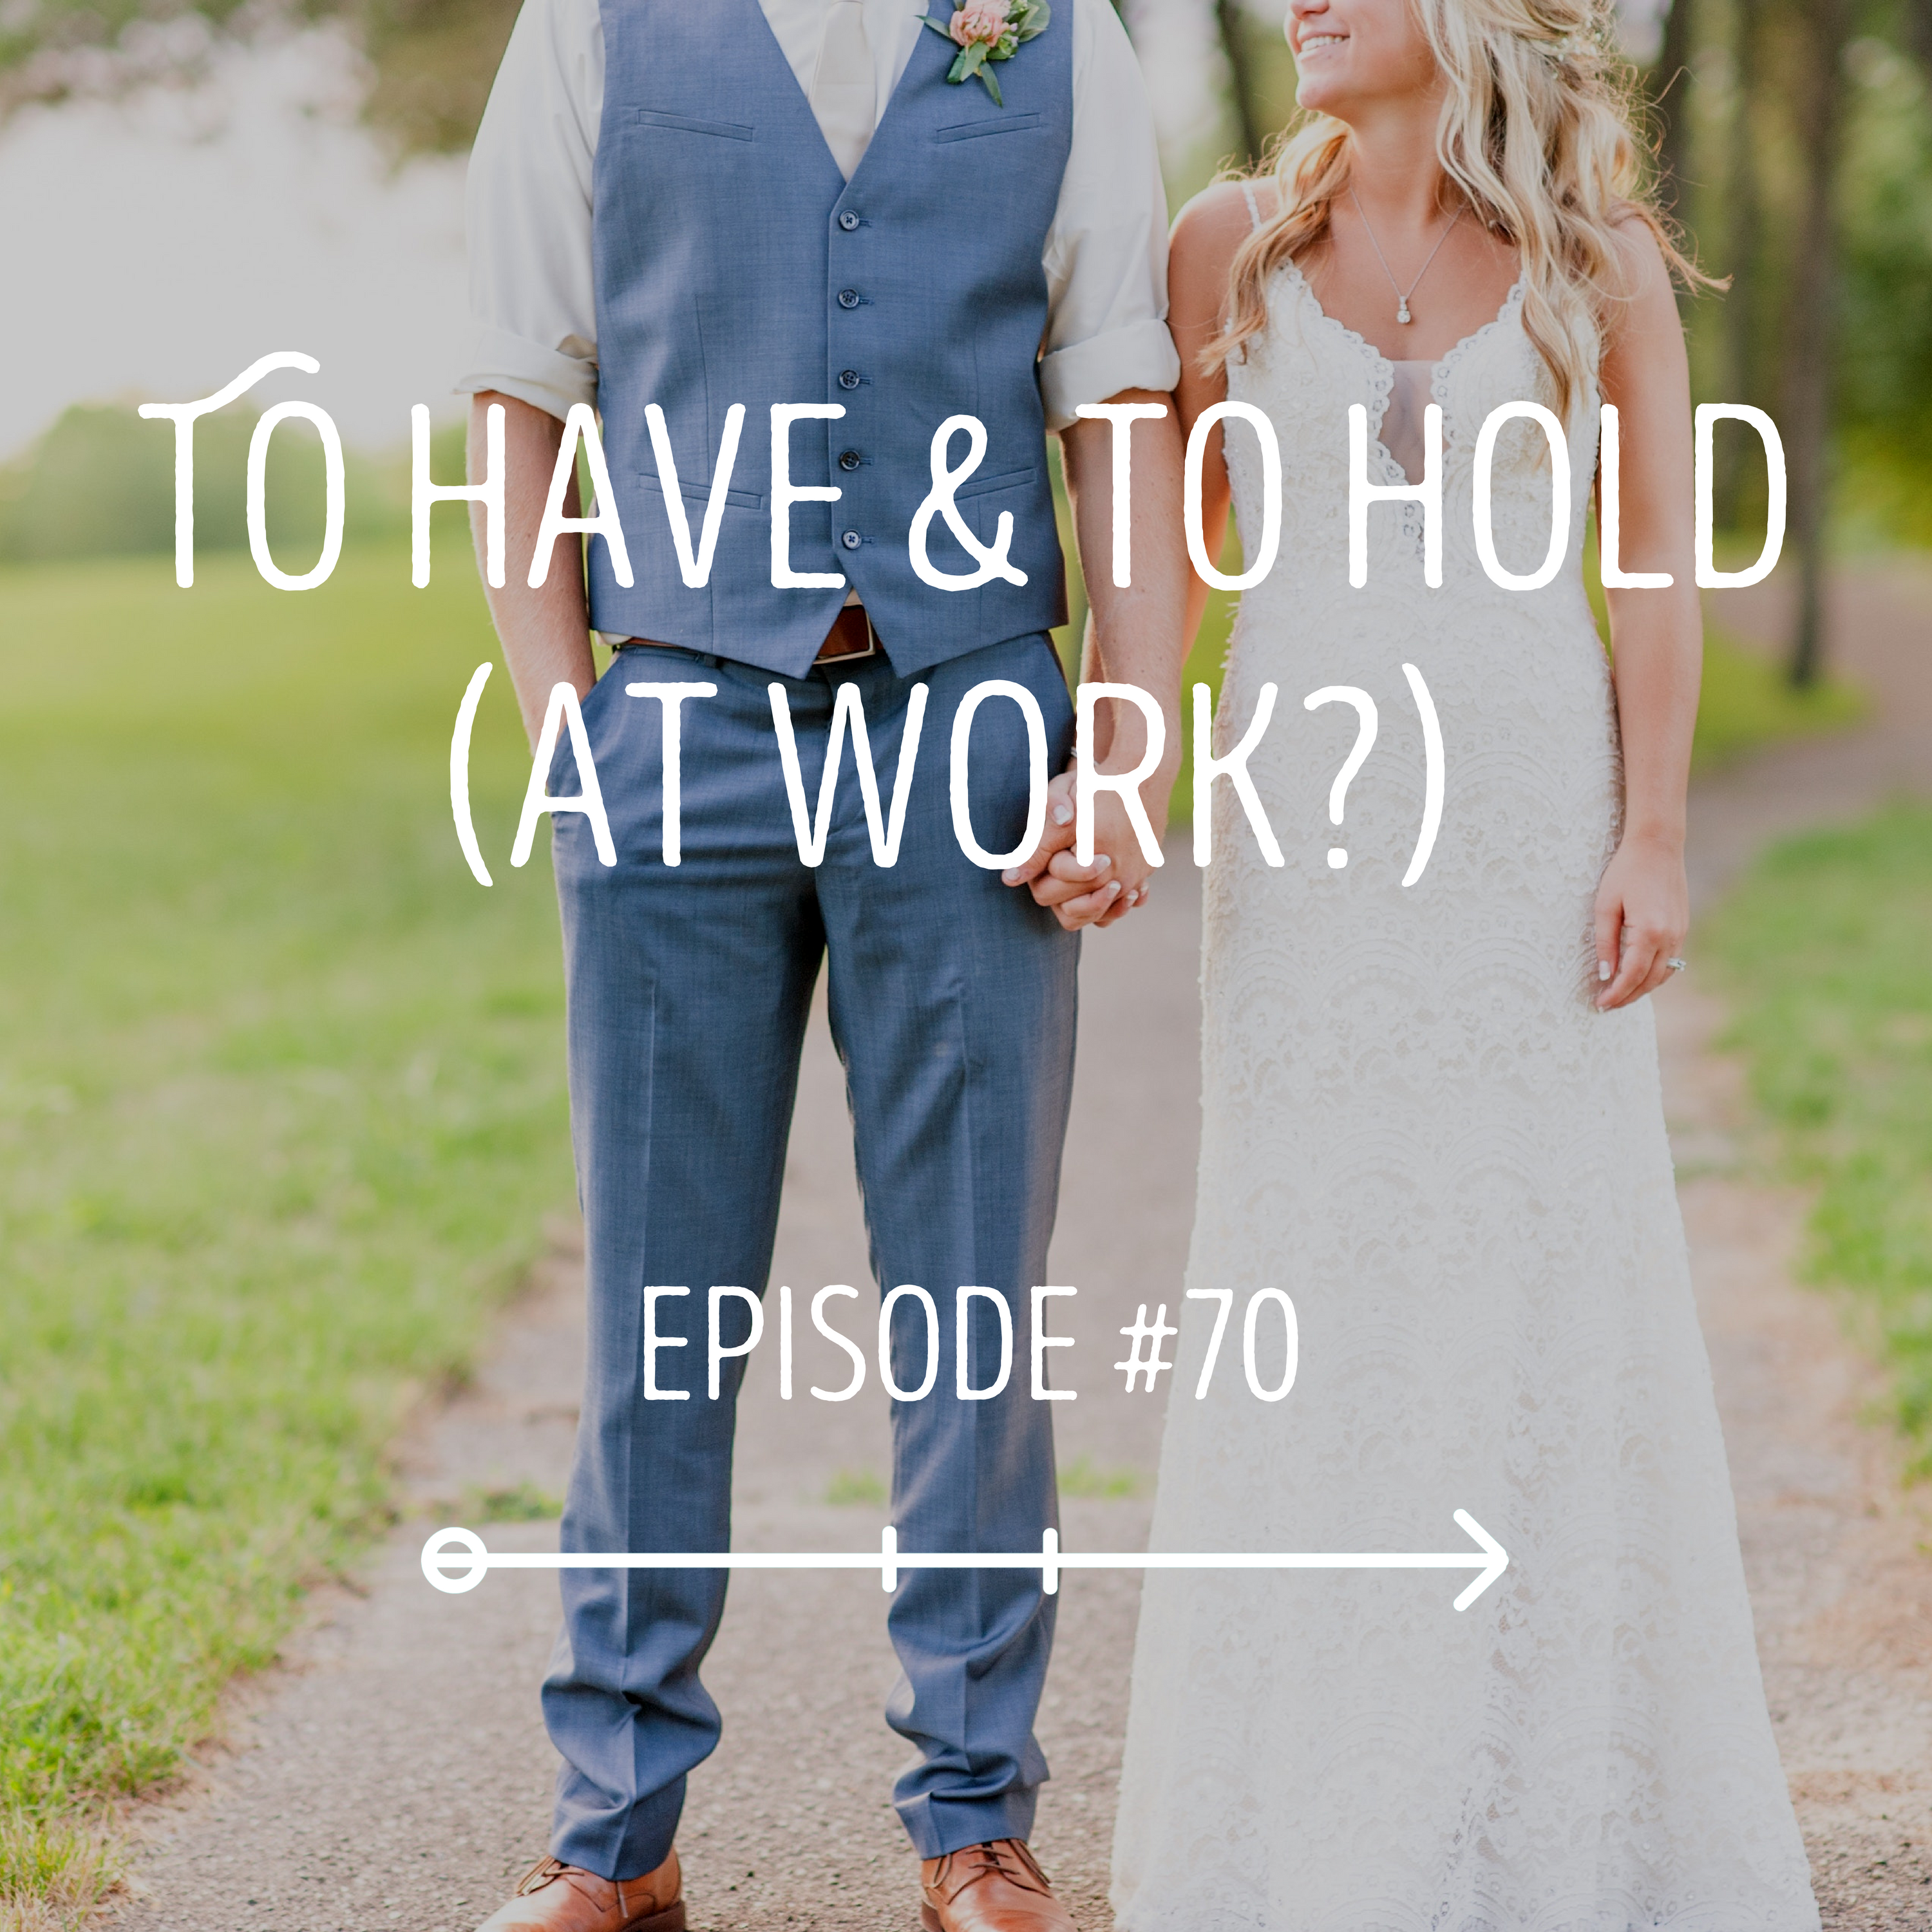 To have & to hold (at work?) : EPISODE 70